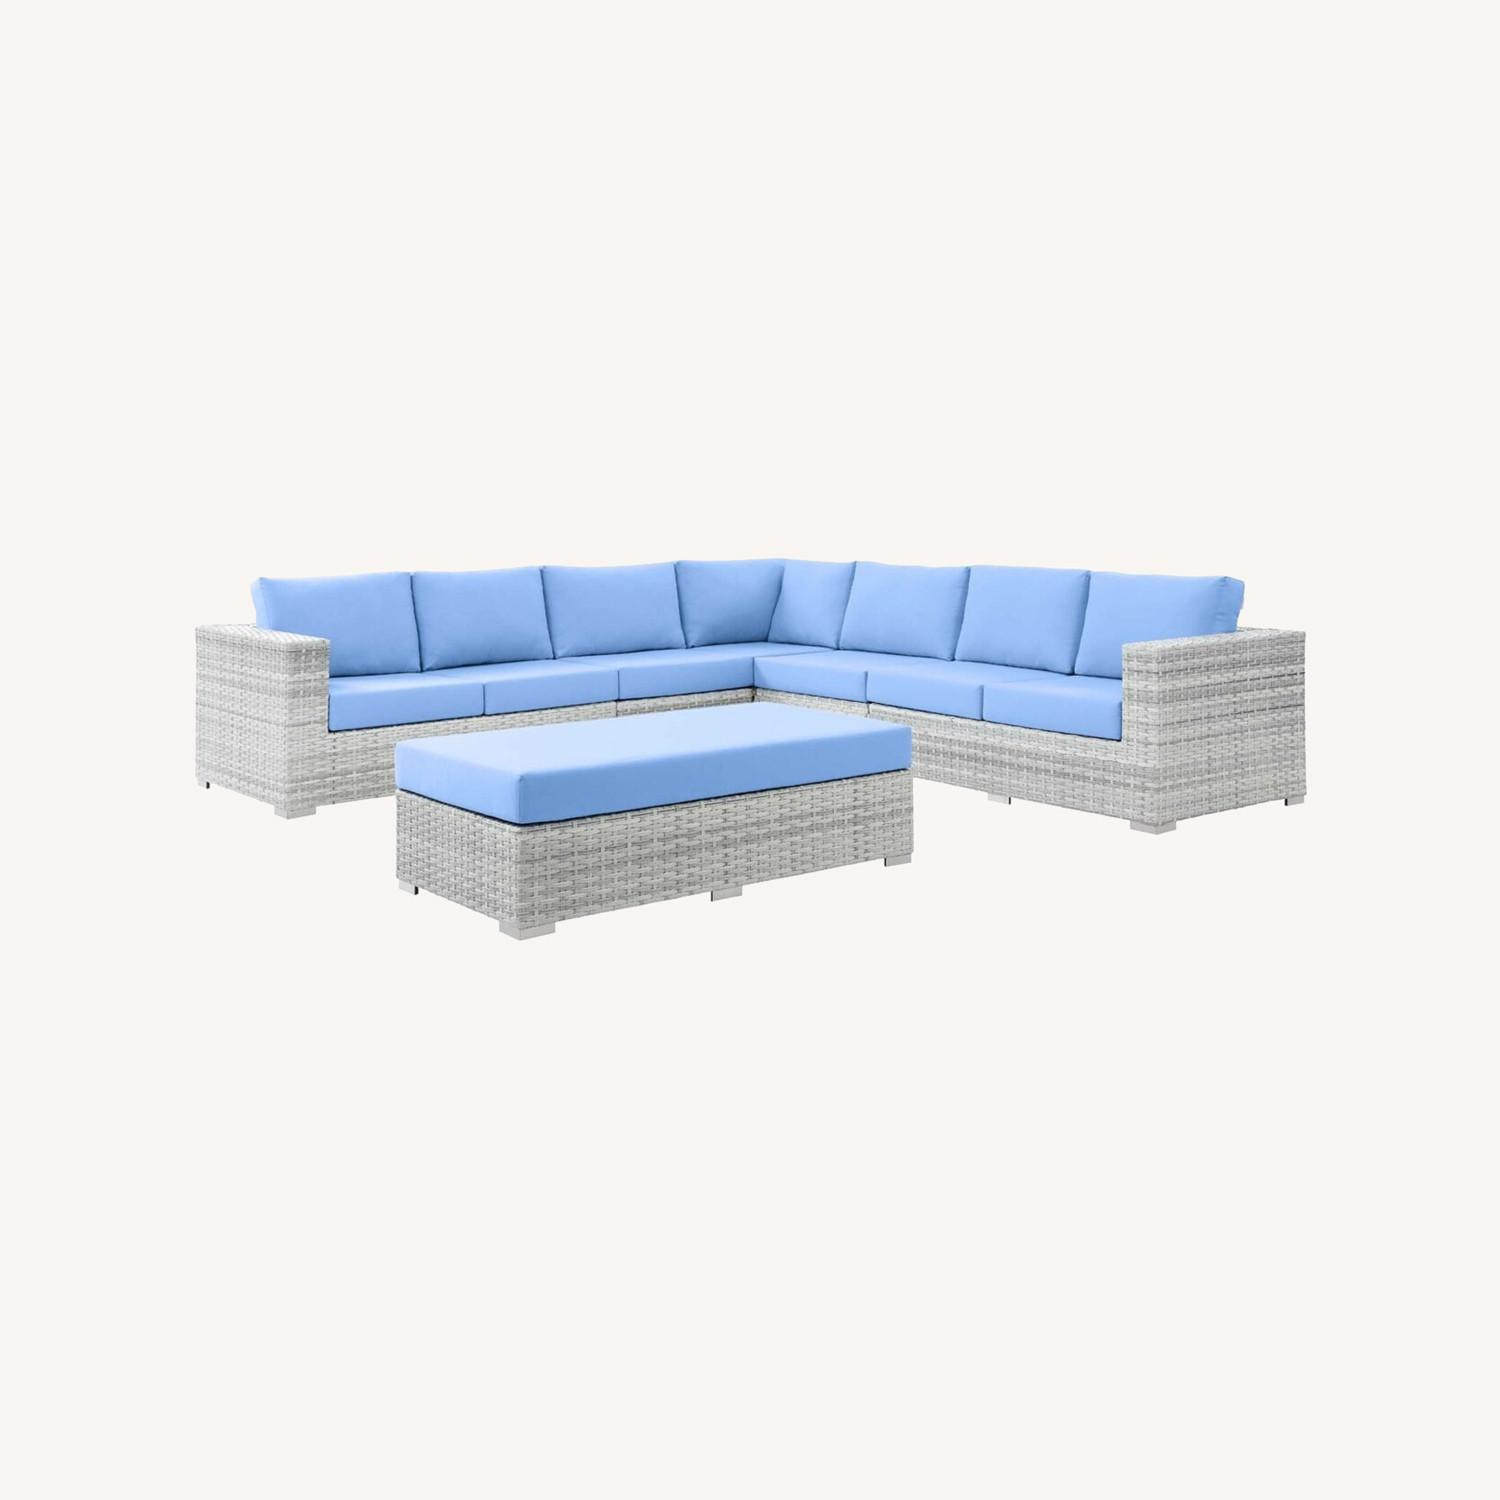 6-Piece Outdoor Patio Sectional In Light Blue Seat - image-16